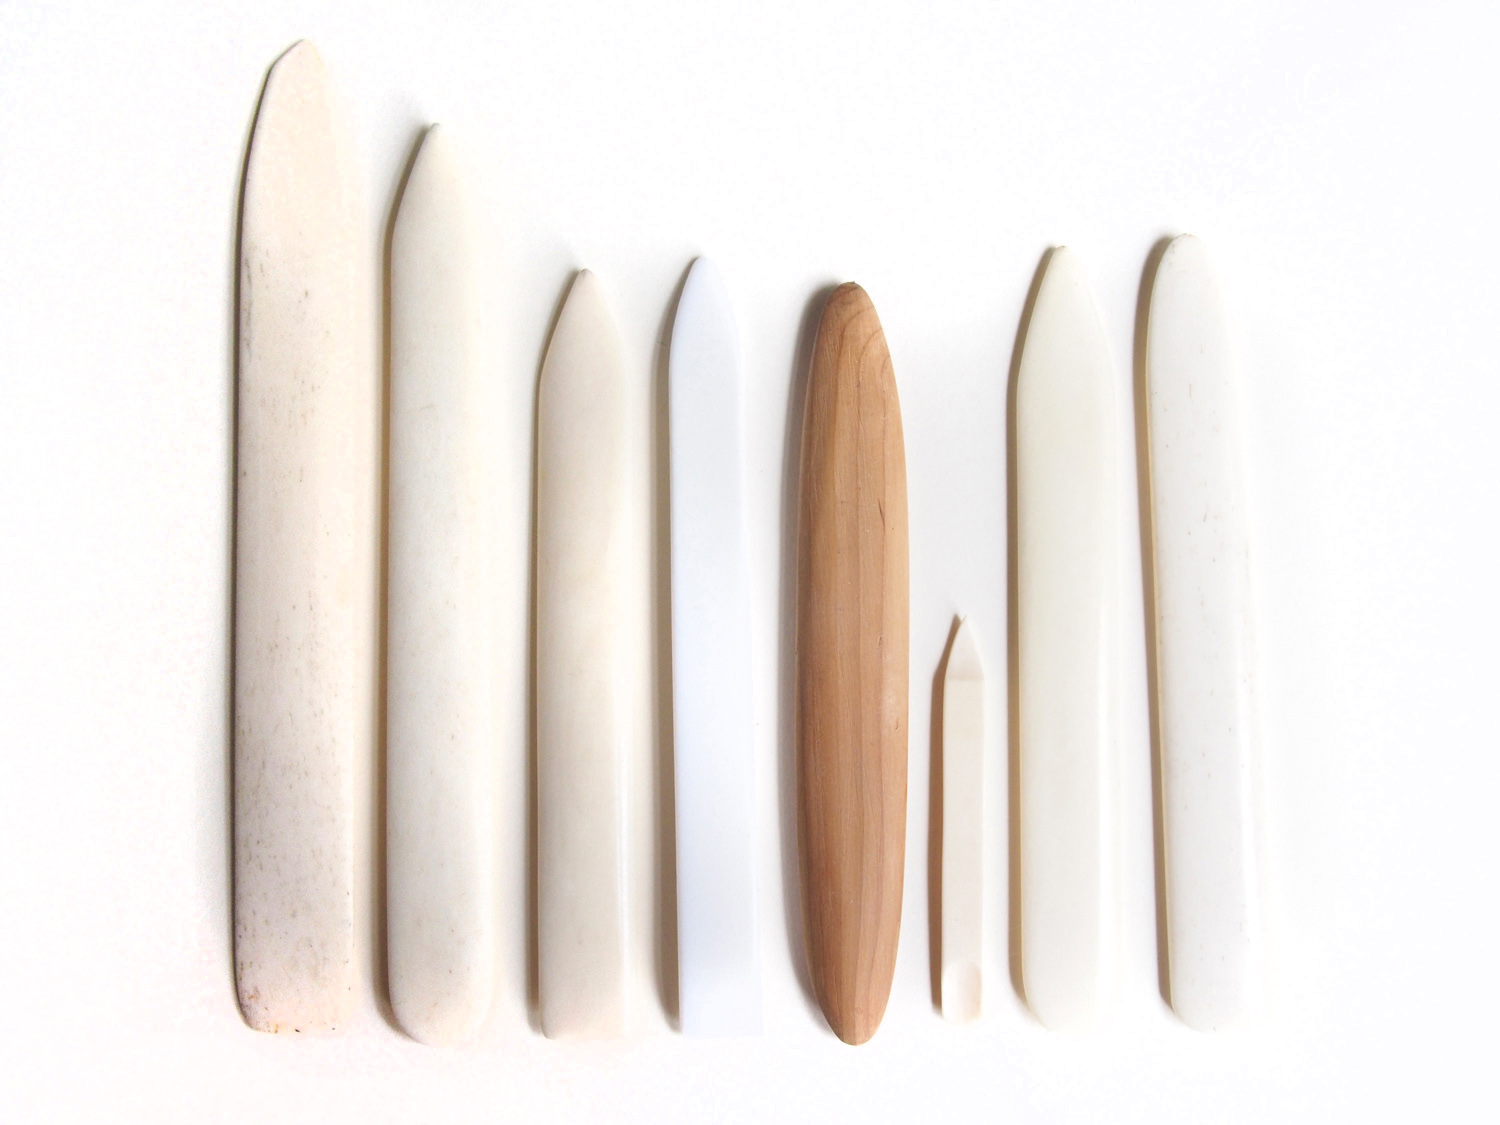 More bone folders than I need: I only ever use the one to the left of the PTFE (white) one, and the tiny one. Tiny one came from a manicure set, and has a little curve at the tip. The wooden one is a replica 18th c. French folder that Tristram made me.